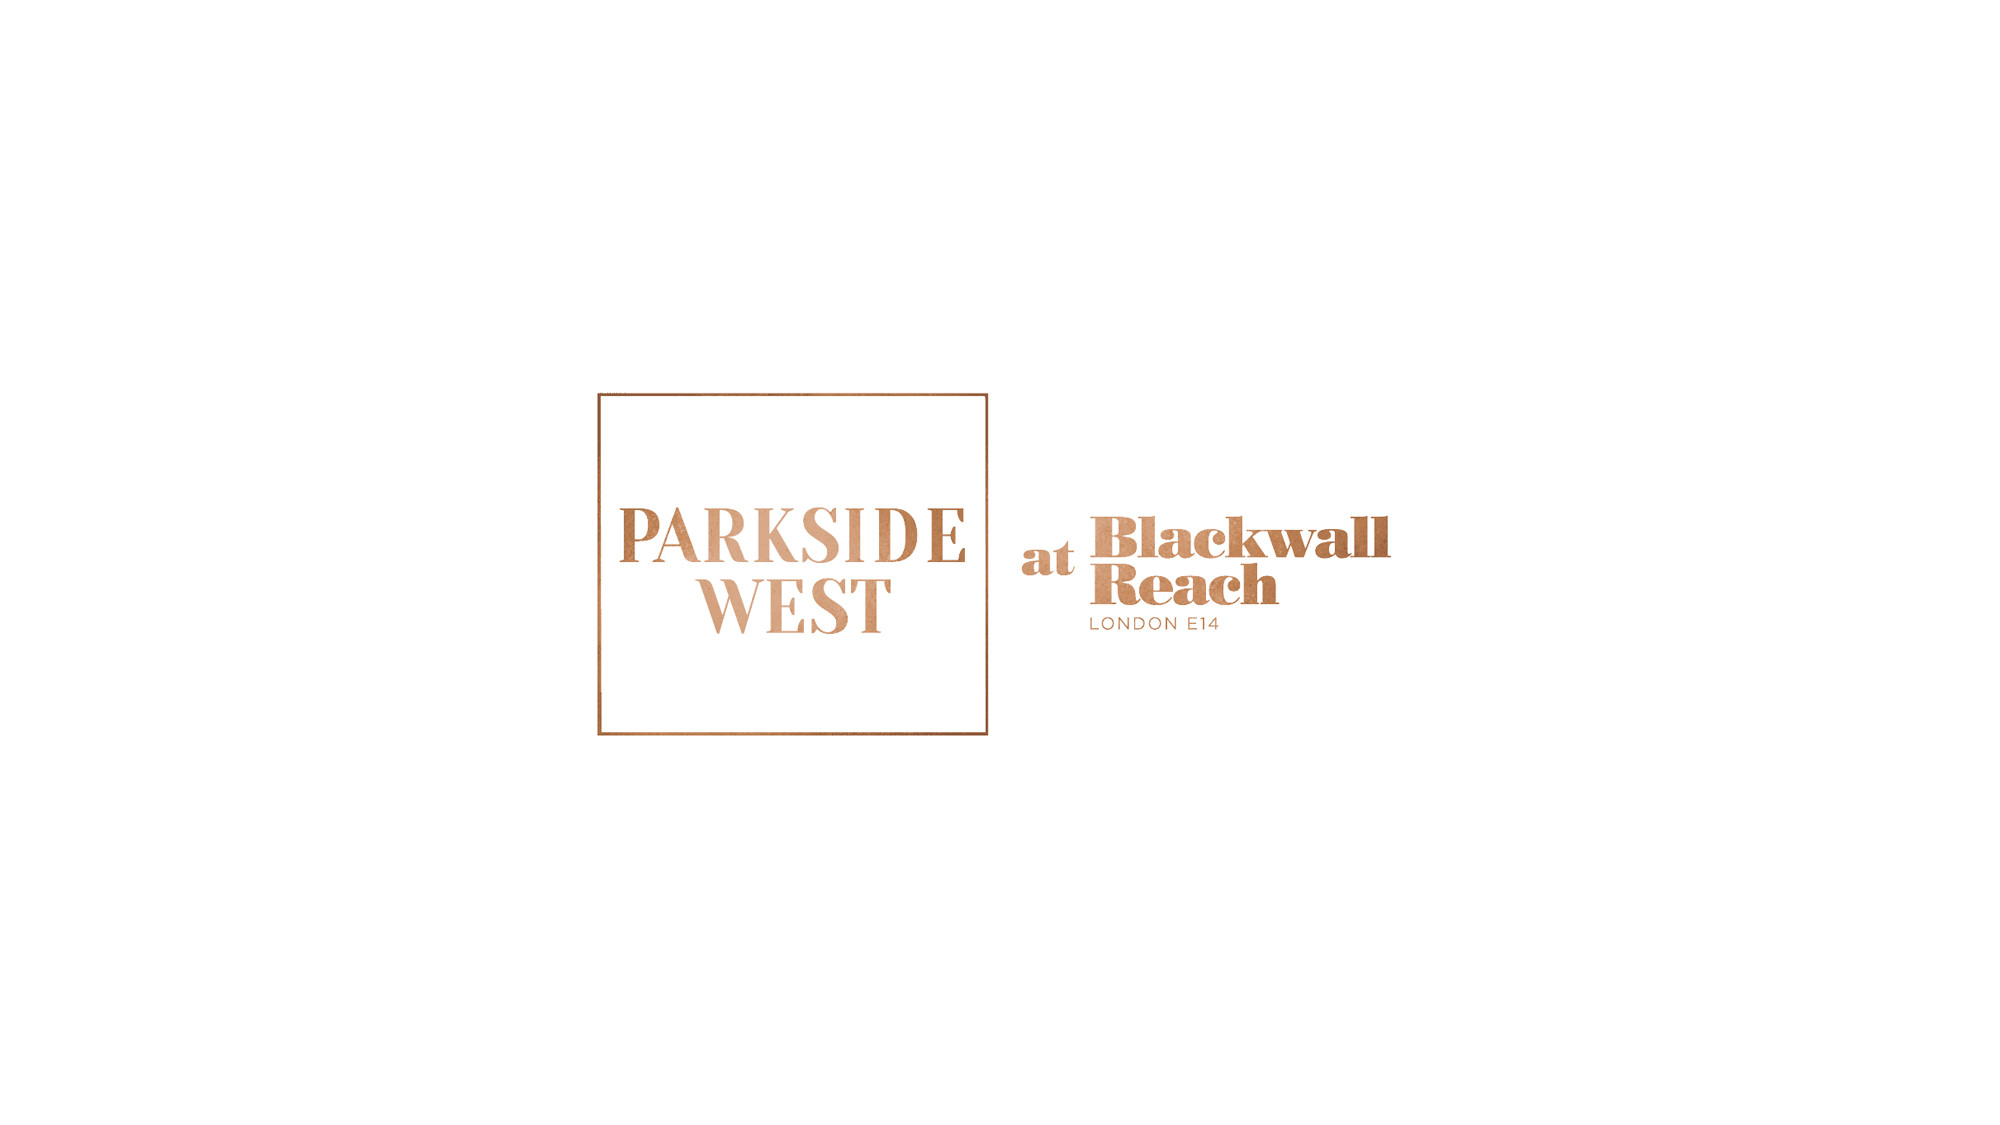 Parkside West at Blackwall Reach